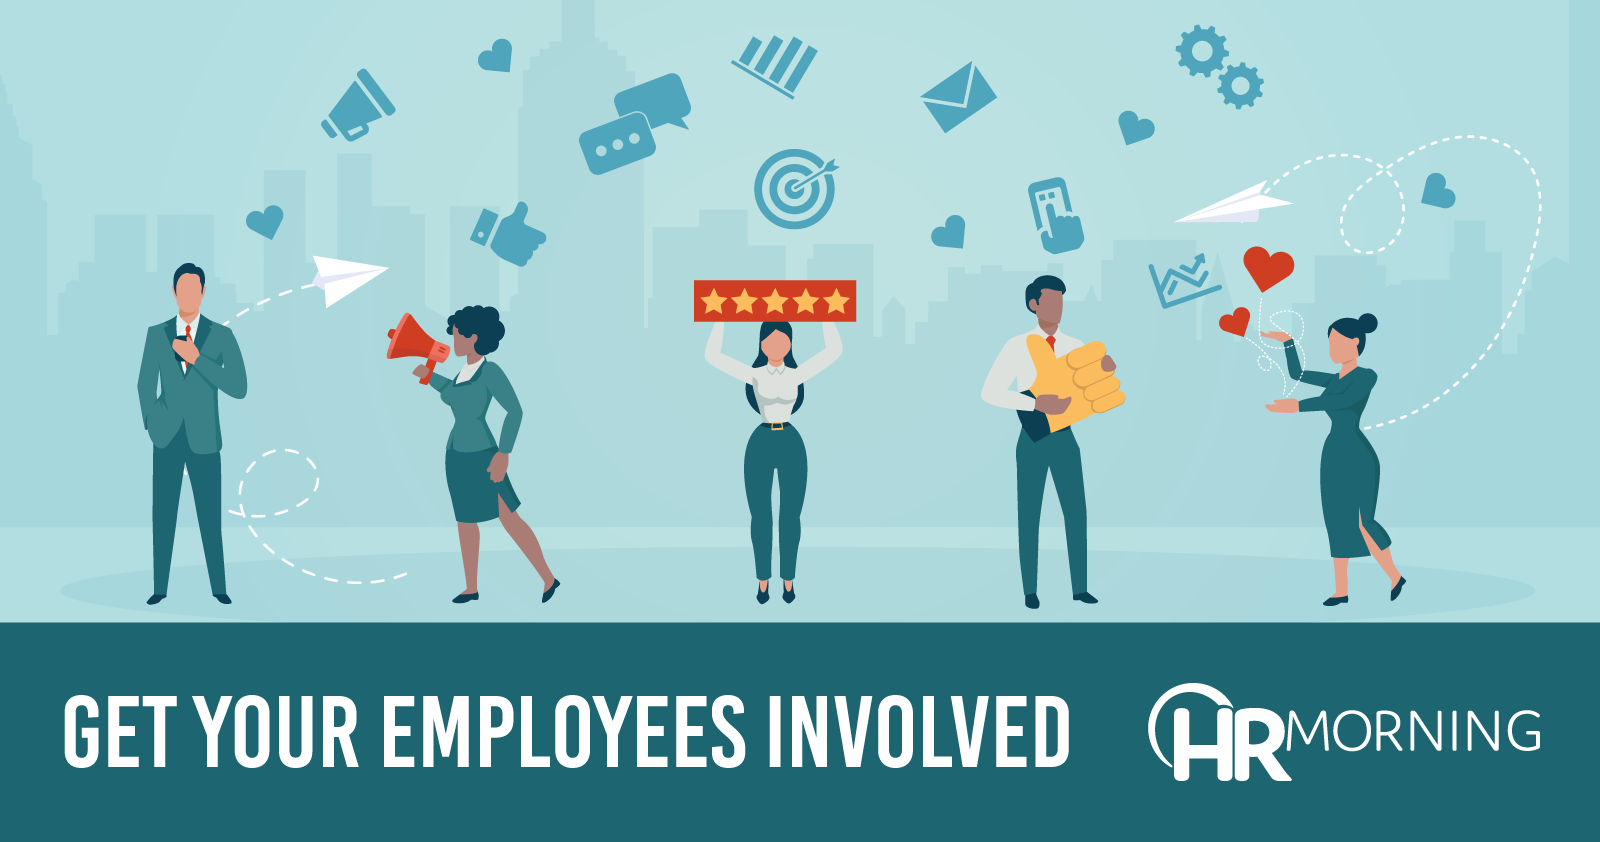 Get Your Employees Involved